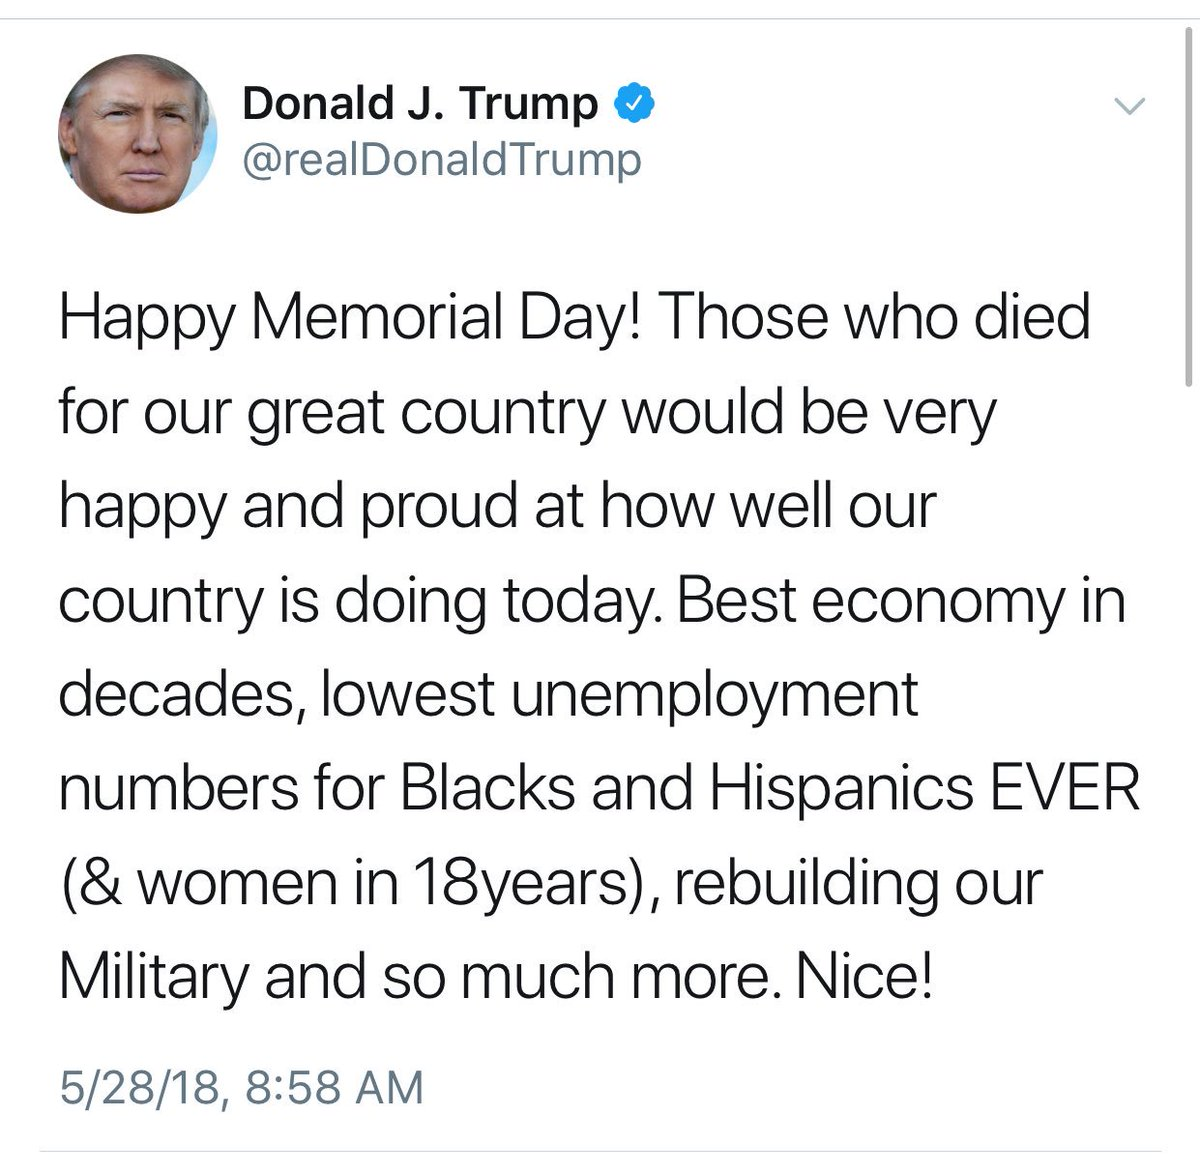 """This is the most inappropriate #MemorialDay comment that a @POTUS has ever made. Self-promotion on a day to remember the fallen, and wishing those remembering their deceased loved ones a """"happy"""" holiday is appalling. #CadetBoneSpurs"""